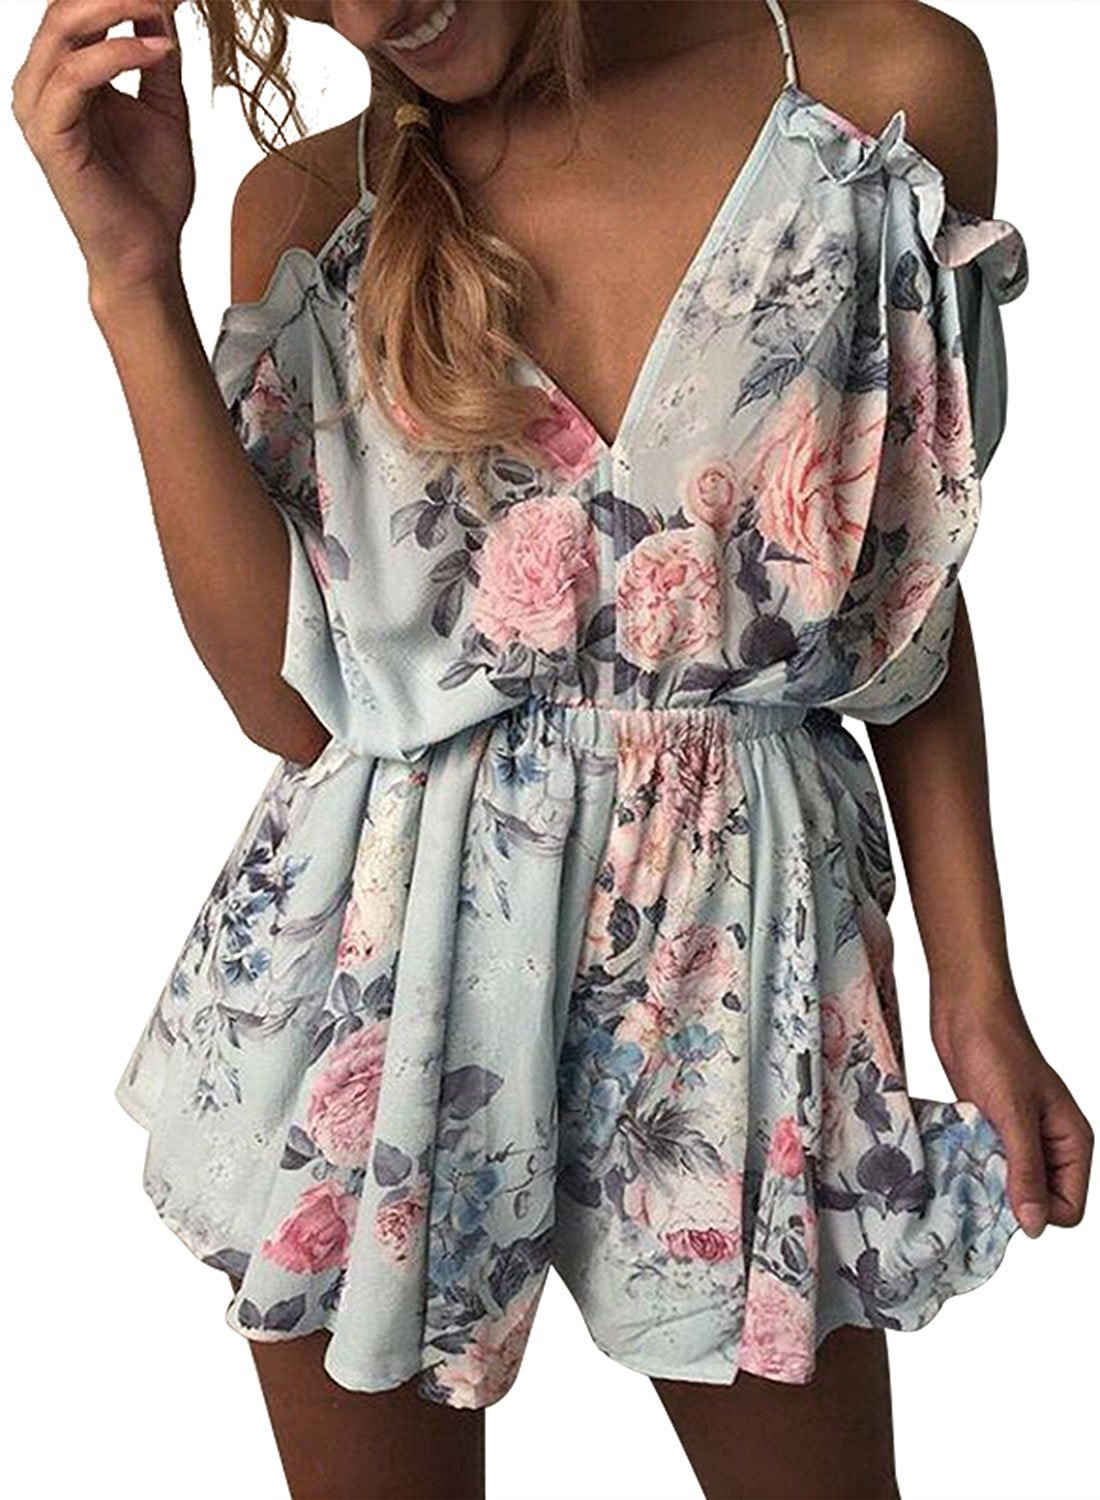 Women's V-neck Floral Halter Frill Backless Beach Short Overall Jumpsuit Sexy Jumpsuit Female Casual Summer Clothing